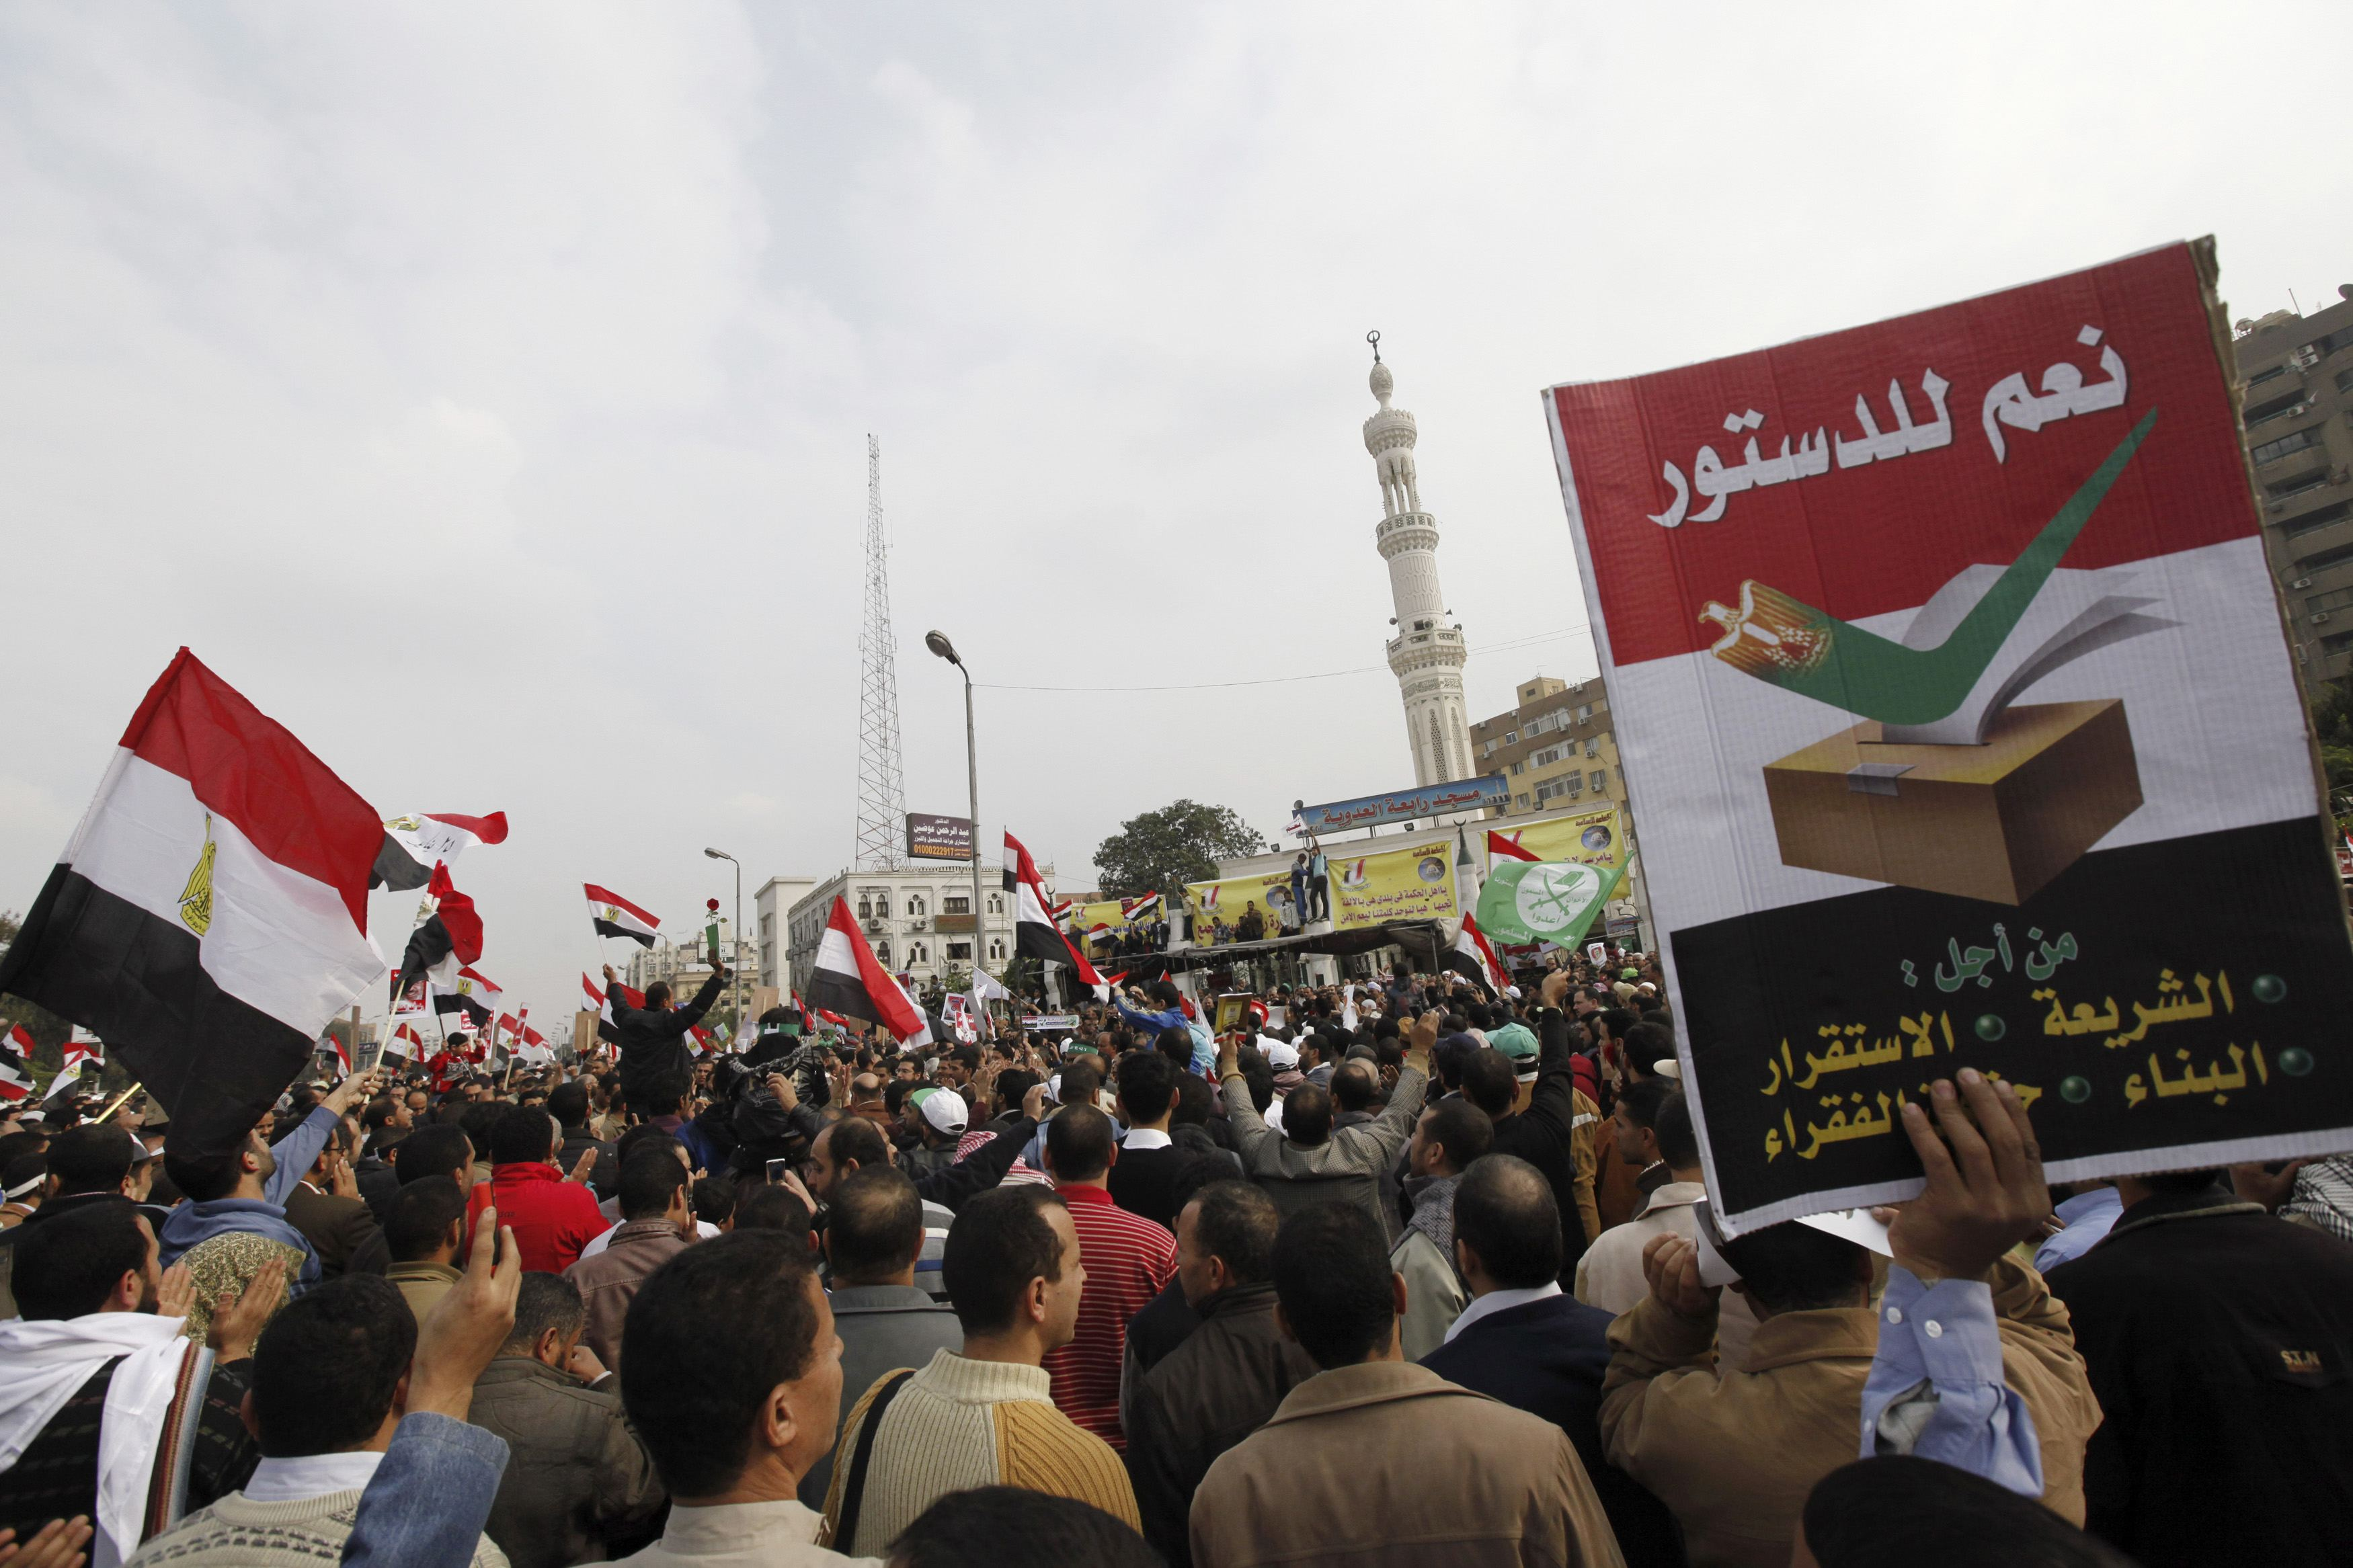 Opposition to presidency opens rifts in Egypt's Islamist current